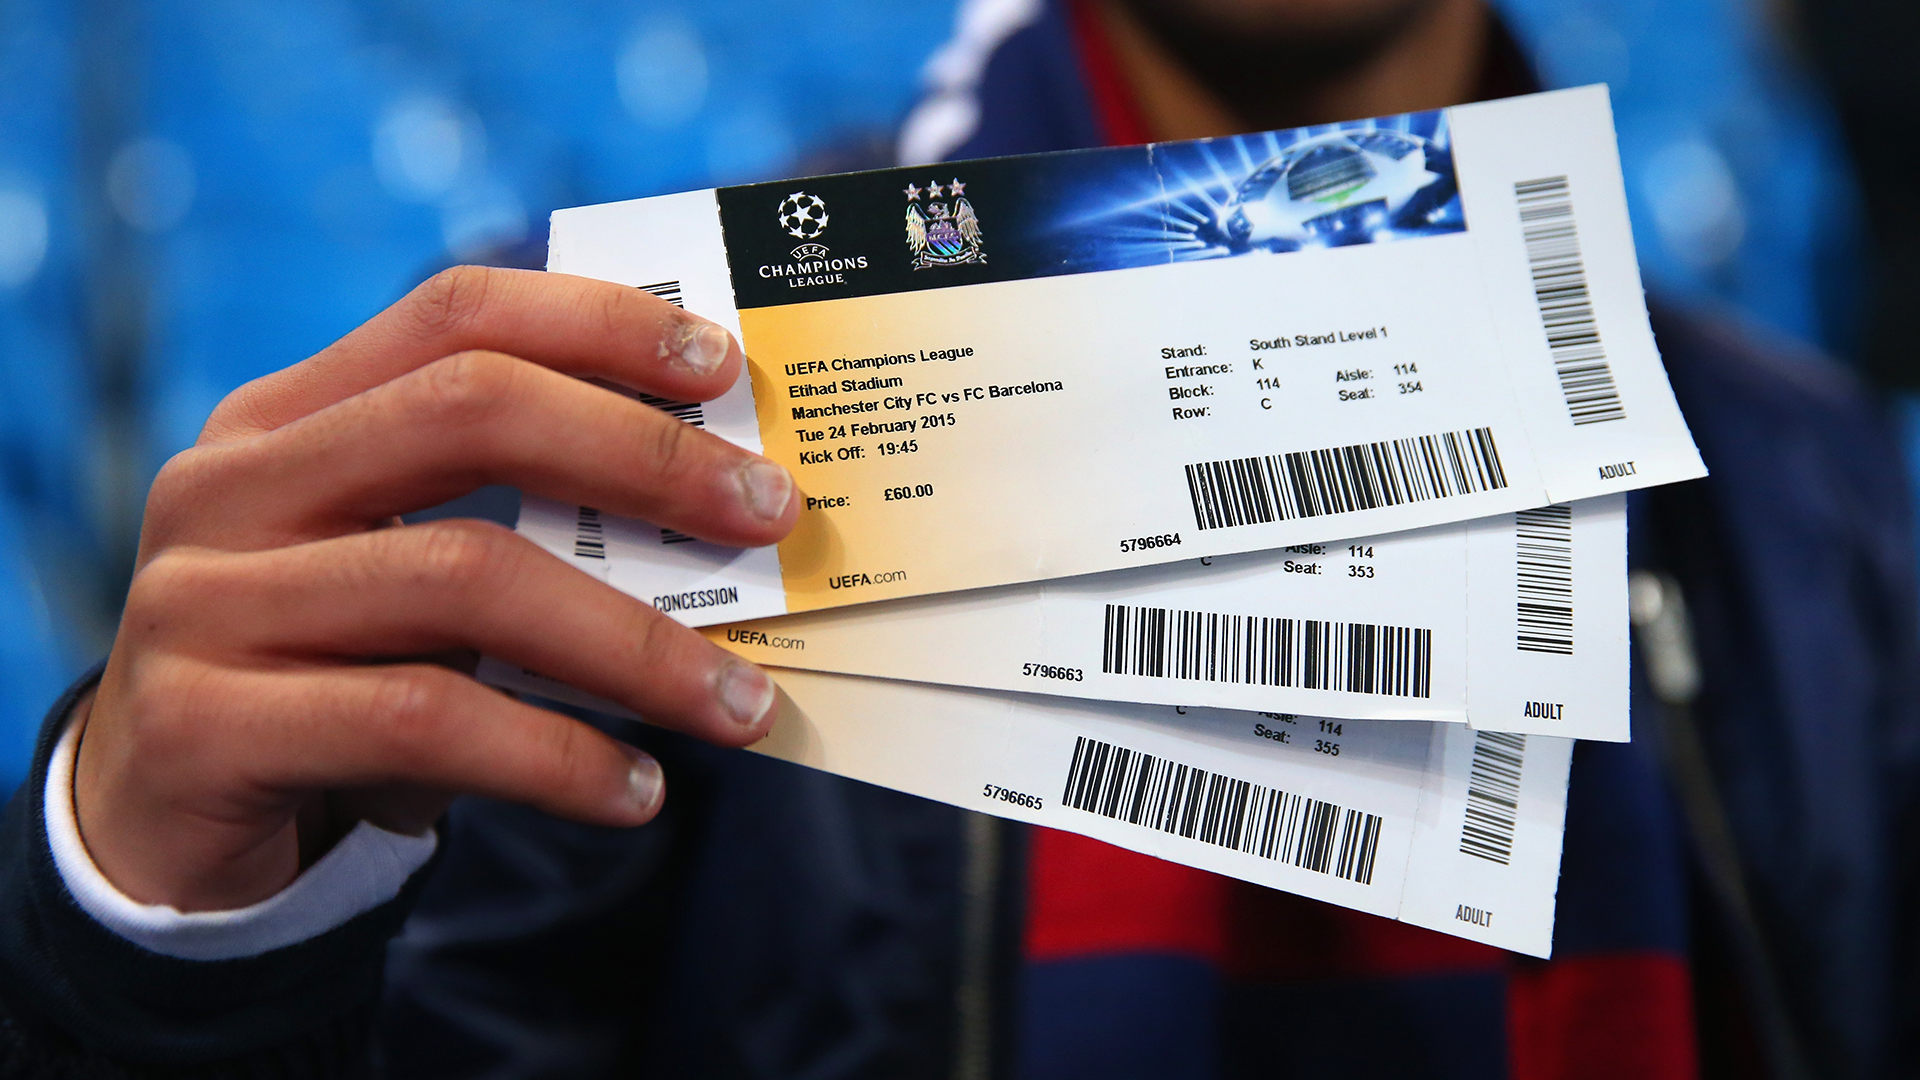 Champions League Tickets Gewinnen